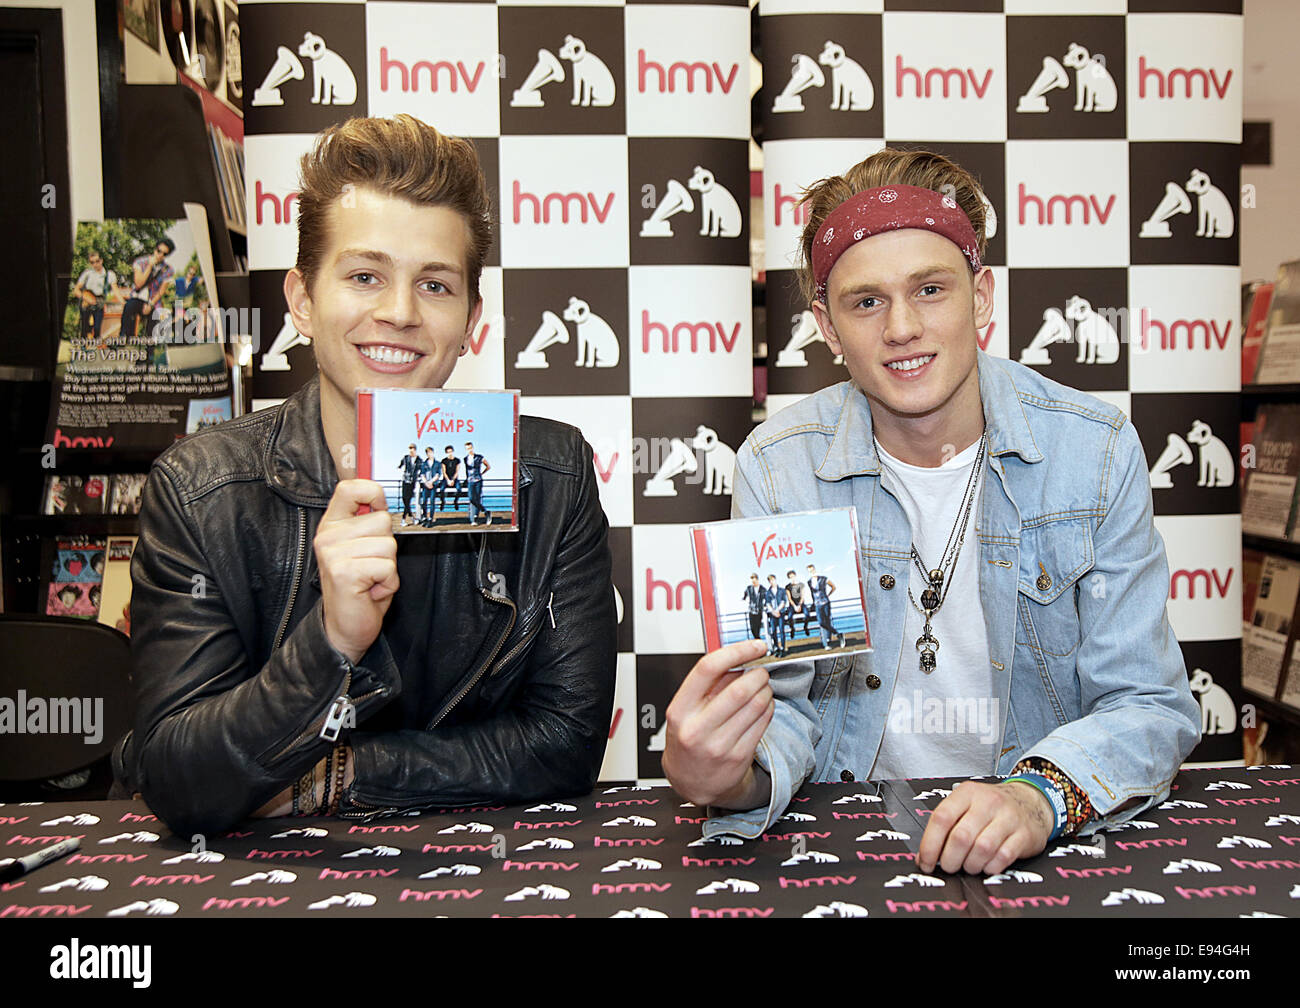 Tristan And James Of The Vamps Meet Fans And Sign Copies Of Their Cd